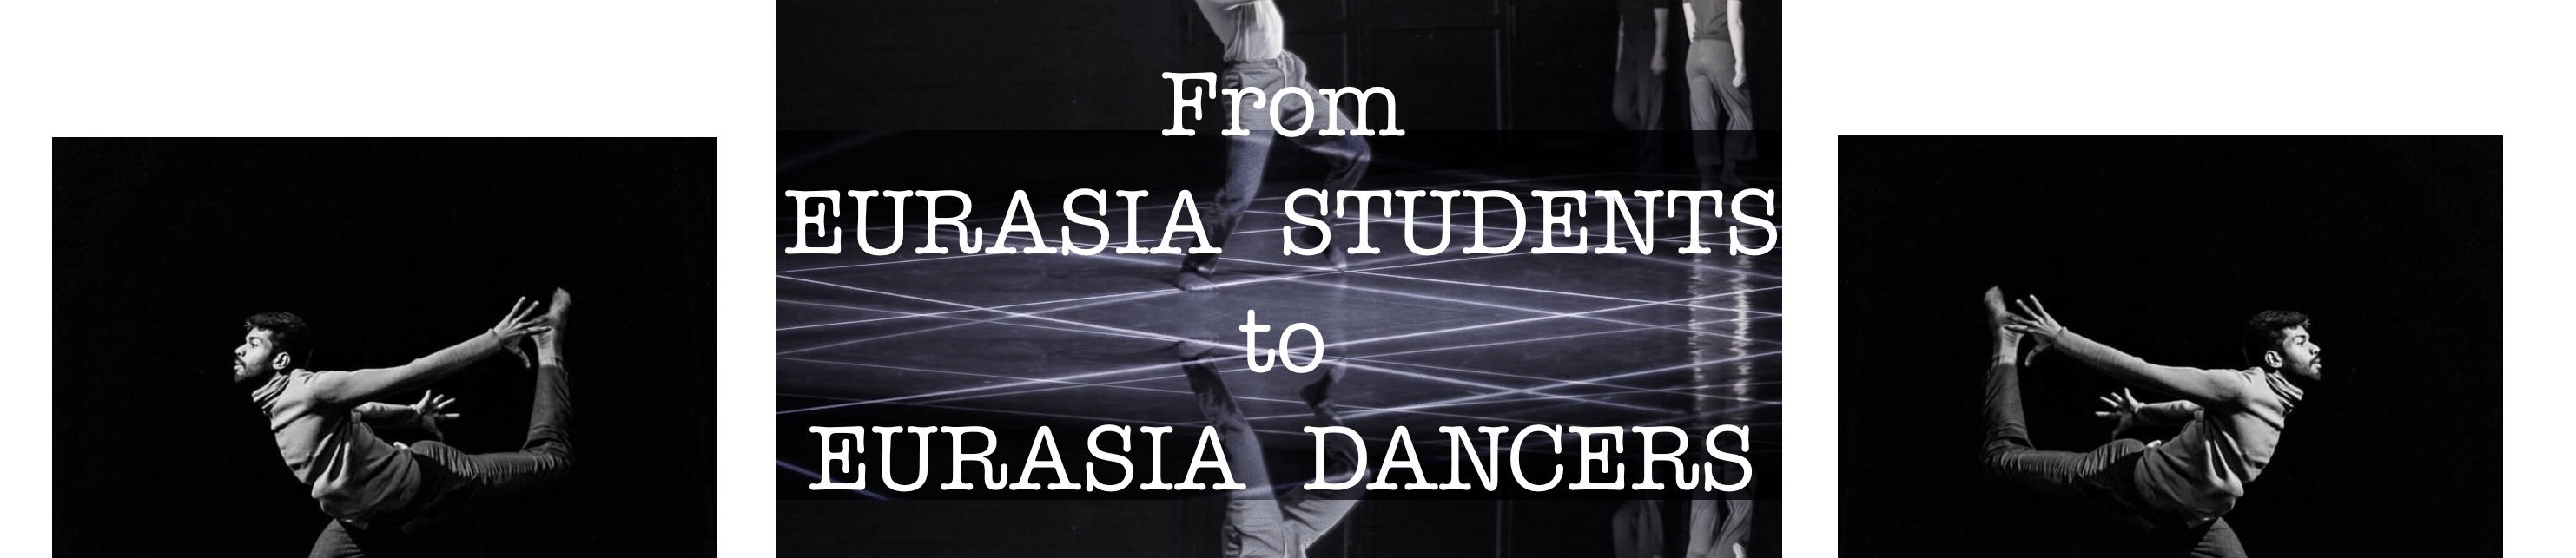 From Eurasia Students to Eurasia Dancers